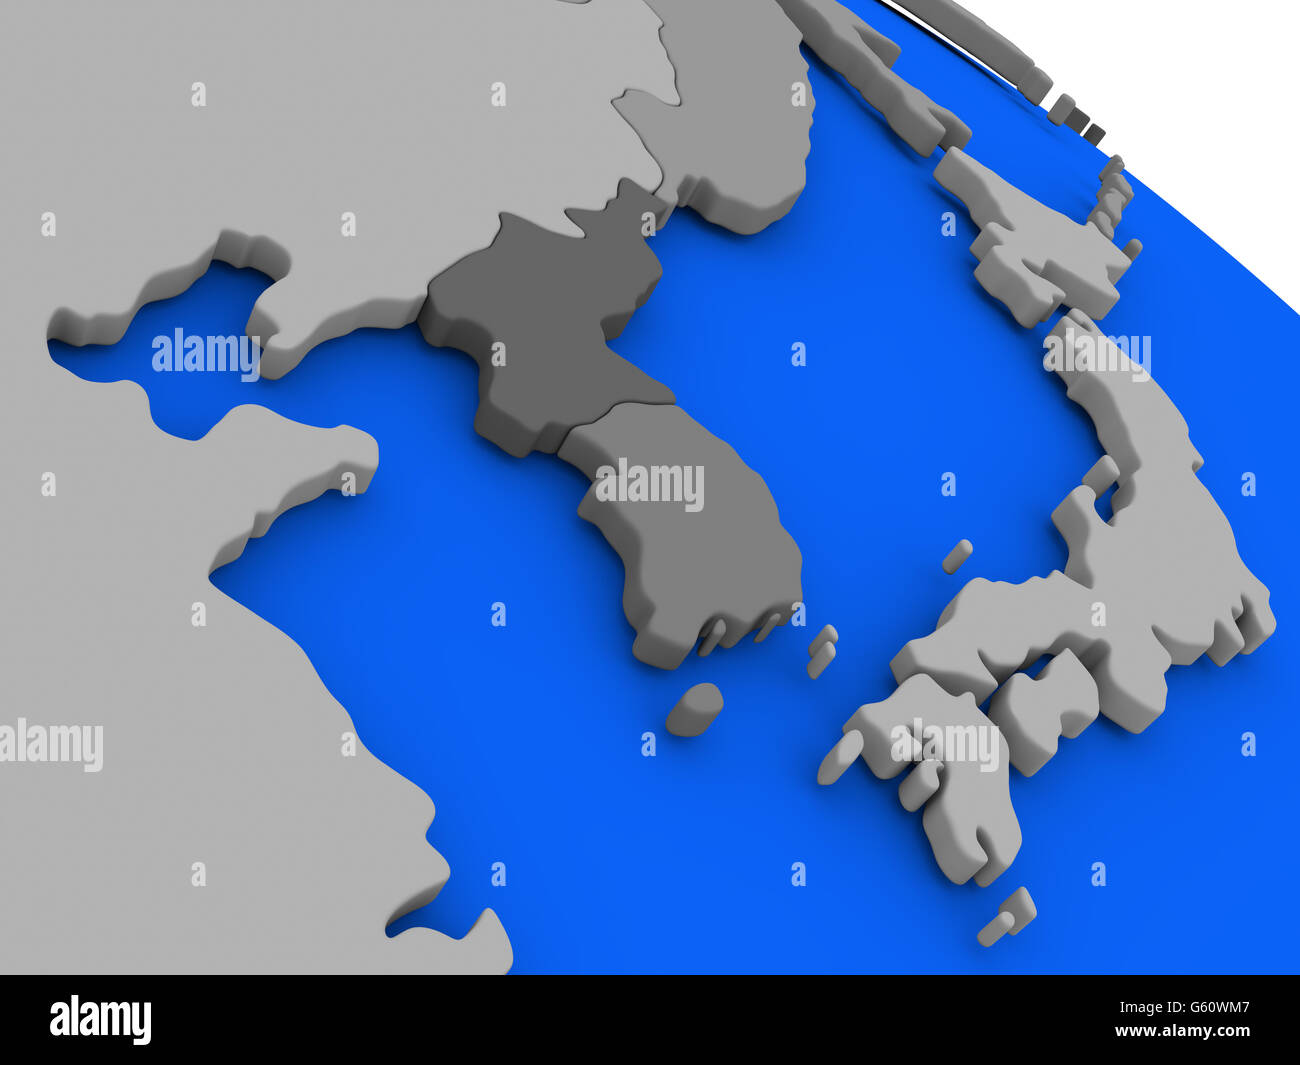 map of south korean and north korea on 3d model of earth with countries in various shades of grey and blue oceans 3d illustrati